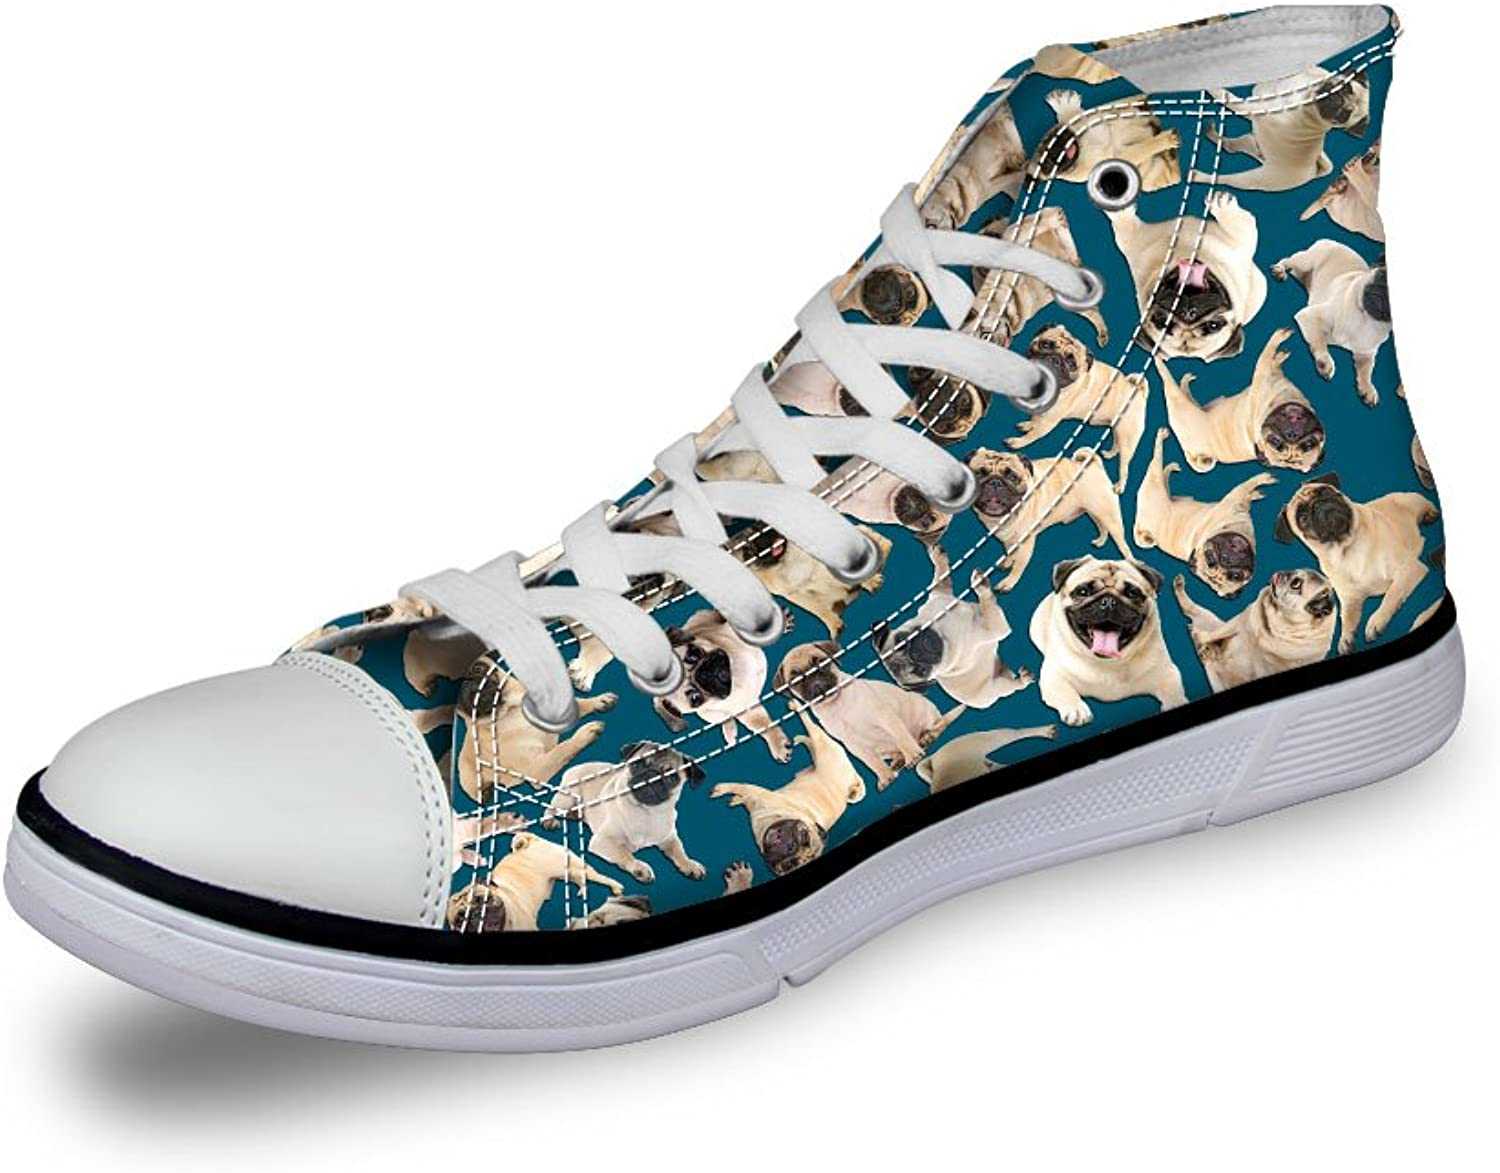 EnlaMorea Floral Cat Dog Print Sneaker High Top Canvas shoes for Men Women